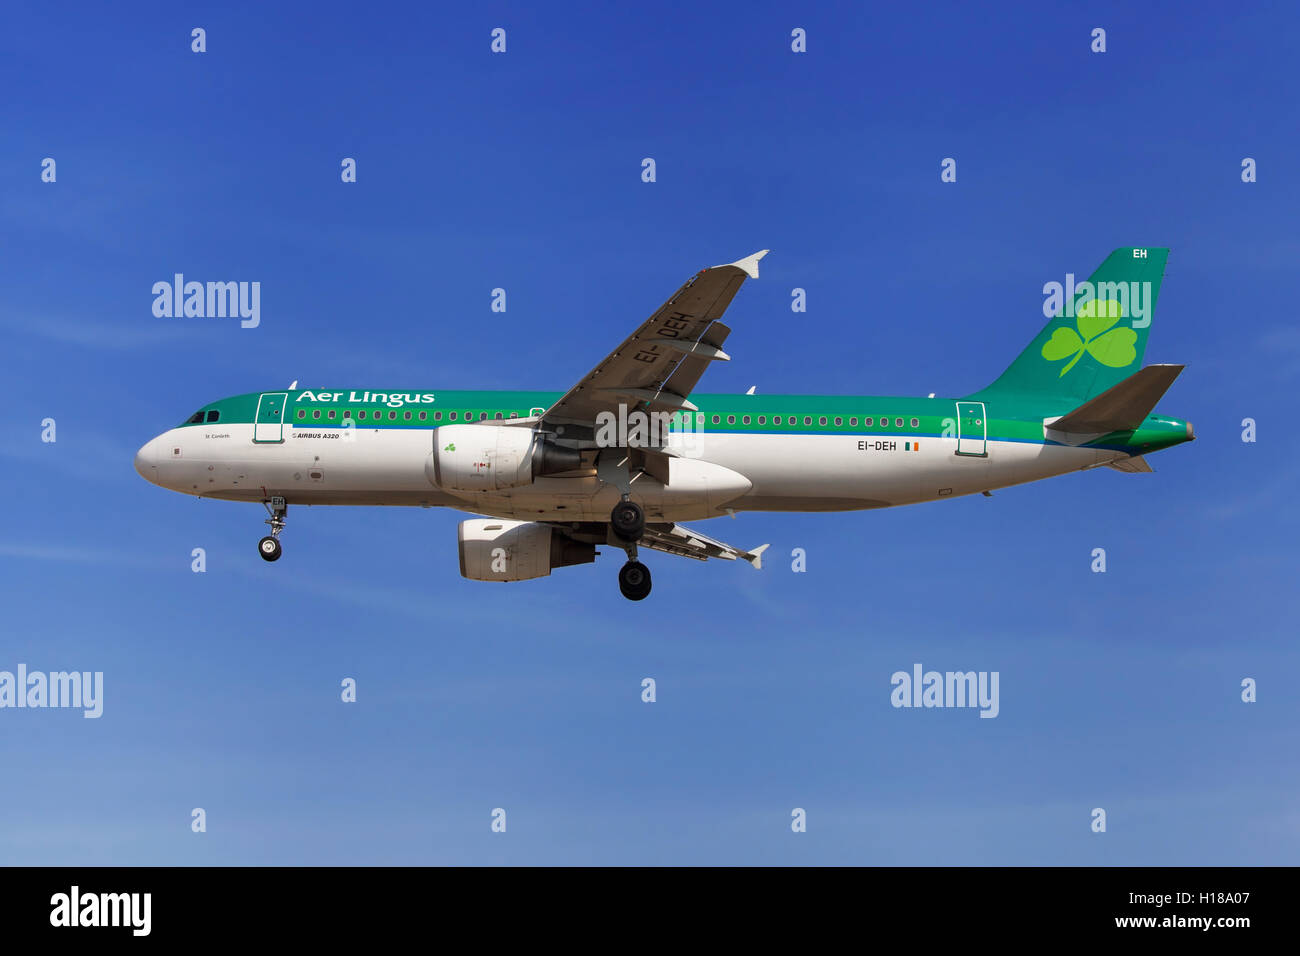 Aer Lingus Airbus A320-200 approaching to El Prat Airport in Barcelona, Spain. - Stock Image